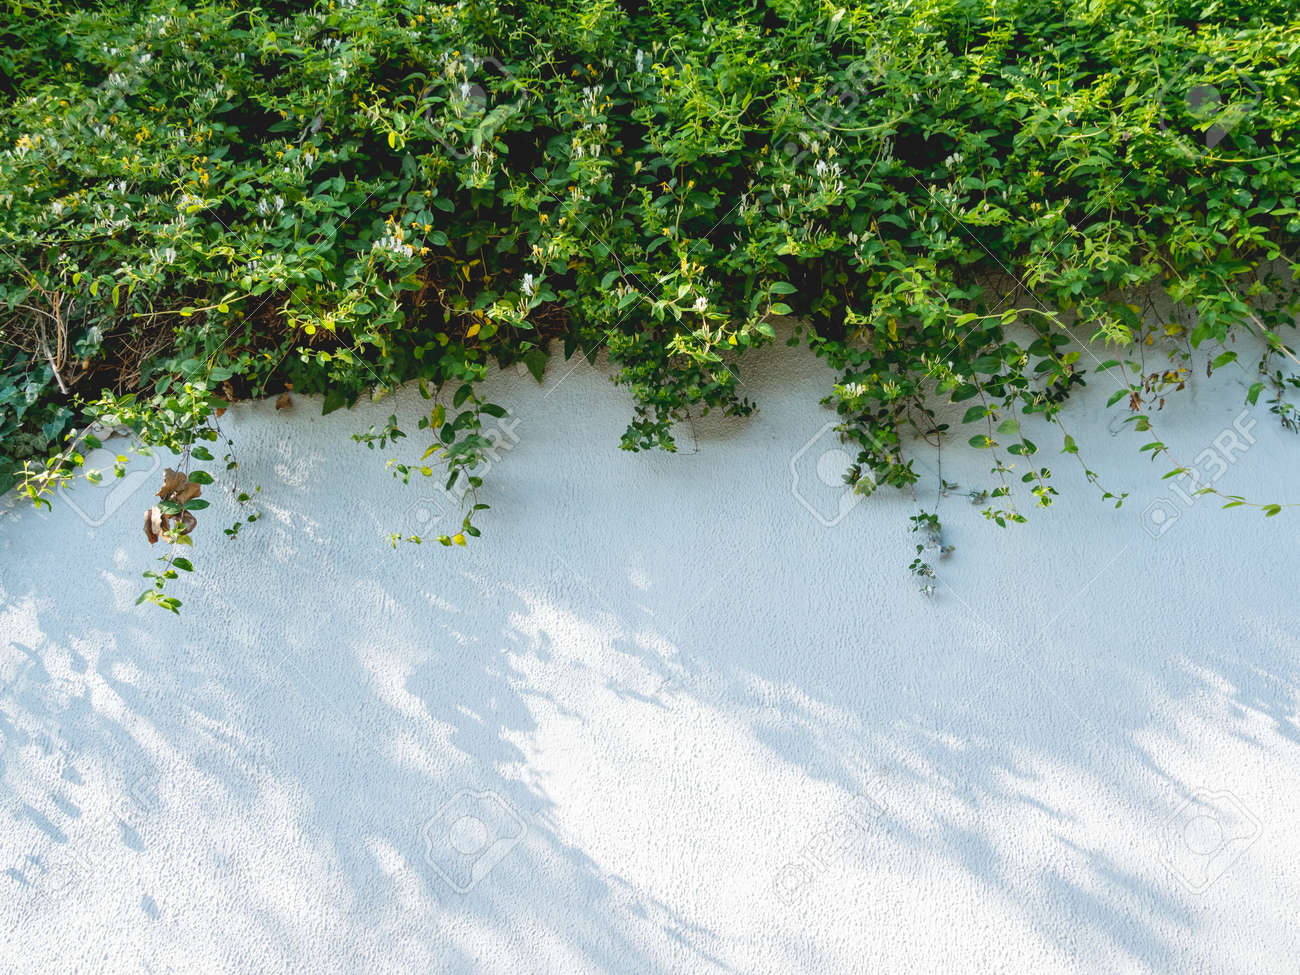 Lacy shadows from trees and bushes on white wall. Abstract background with concrete texture and green foliage of plants. - 172806618